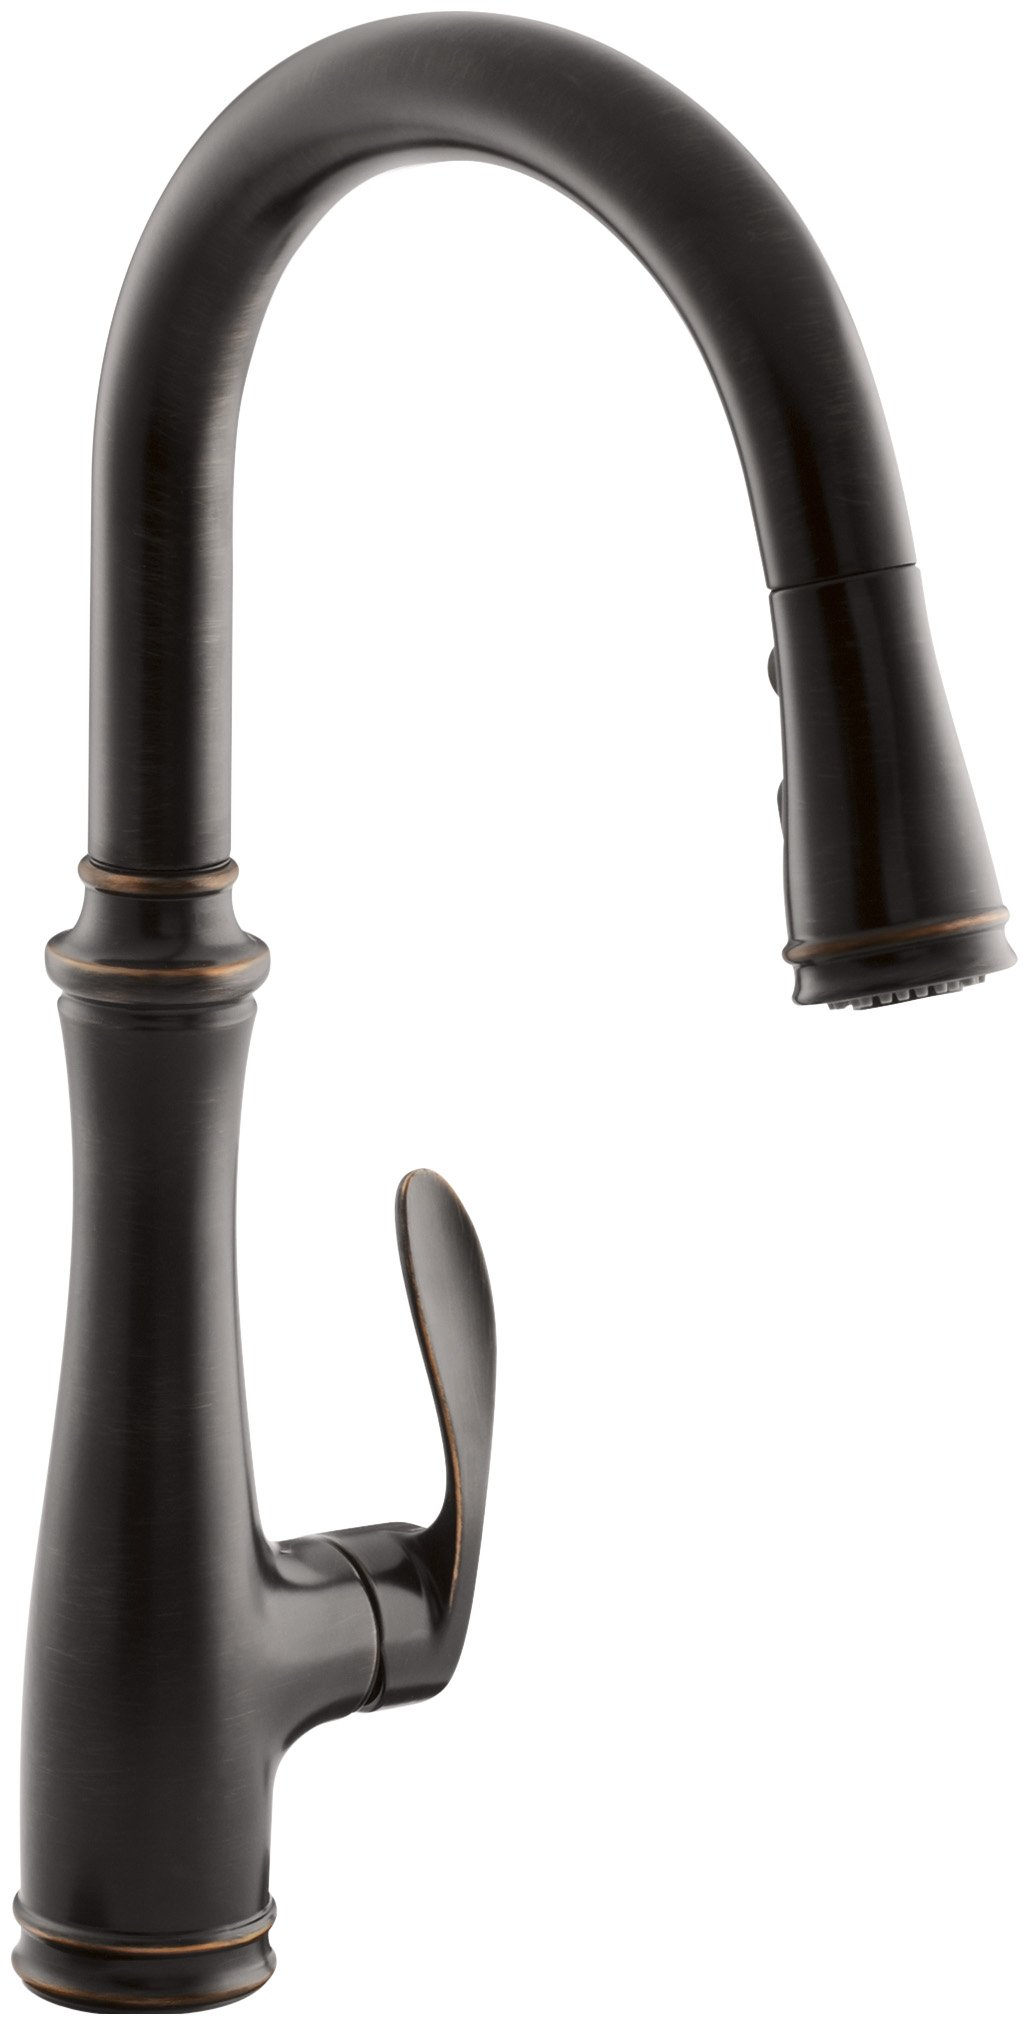 Kohler K-560-2BZ Bellera Pull-Down Kitchen Faucet, Oil Rubbed Bronze